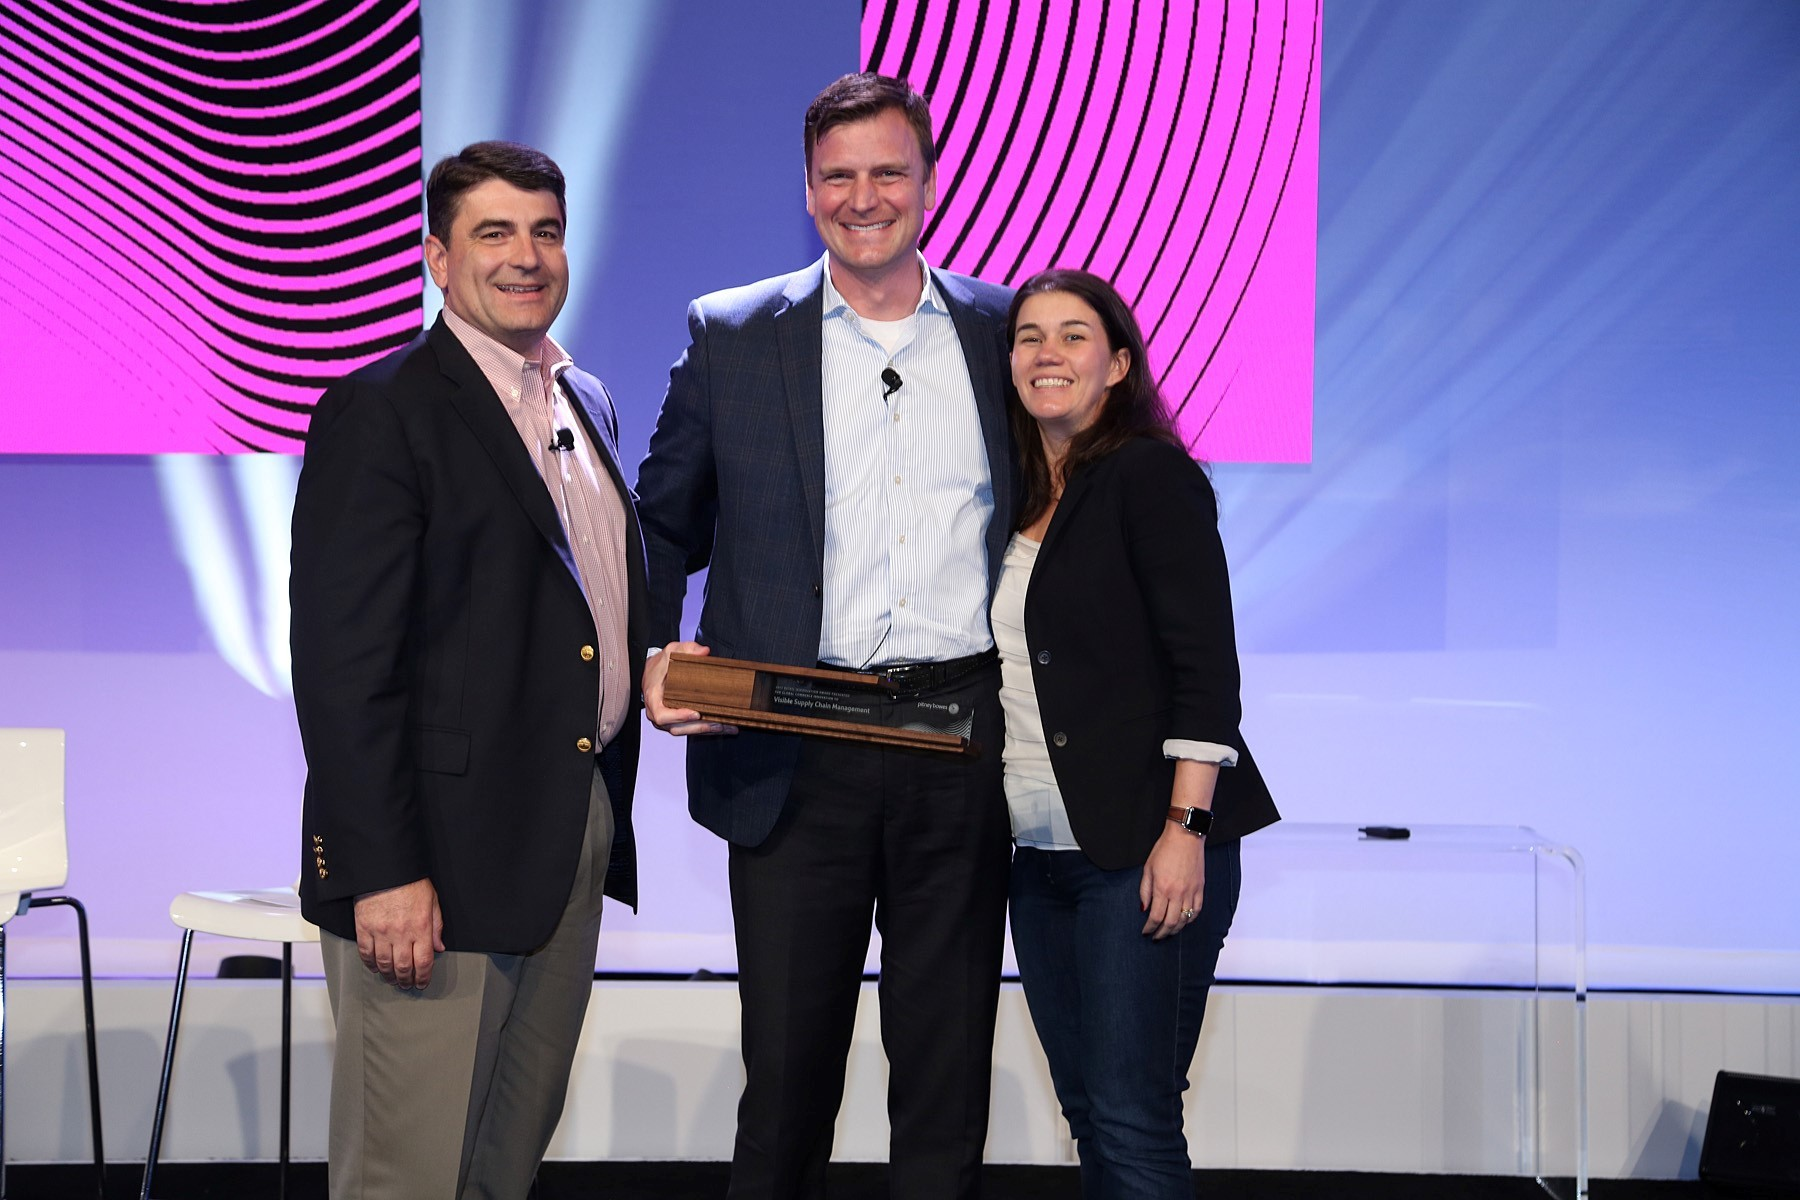 VSCM receives 2017 Retail Revolution Award from Pitney Bowes. (From left Gregg Zegras, Pitney Bowes, Casey Adams, VSCM and Lila Snyder, Pitney Bowes) (Photo: Business Wire)